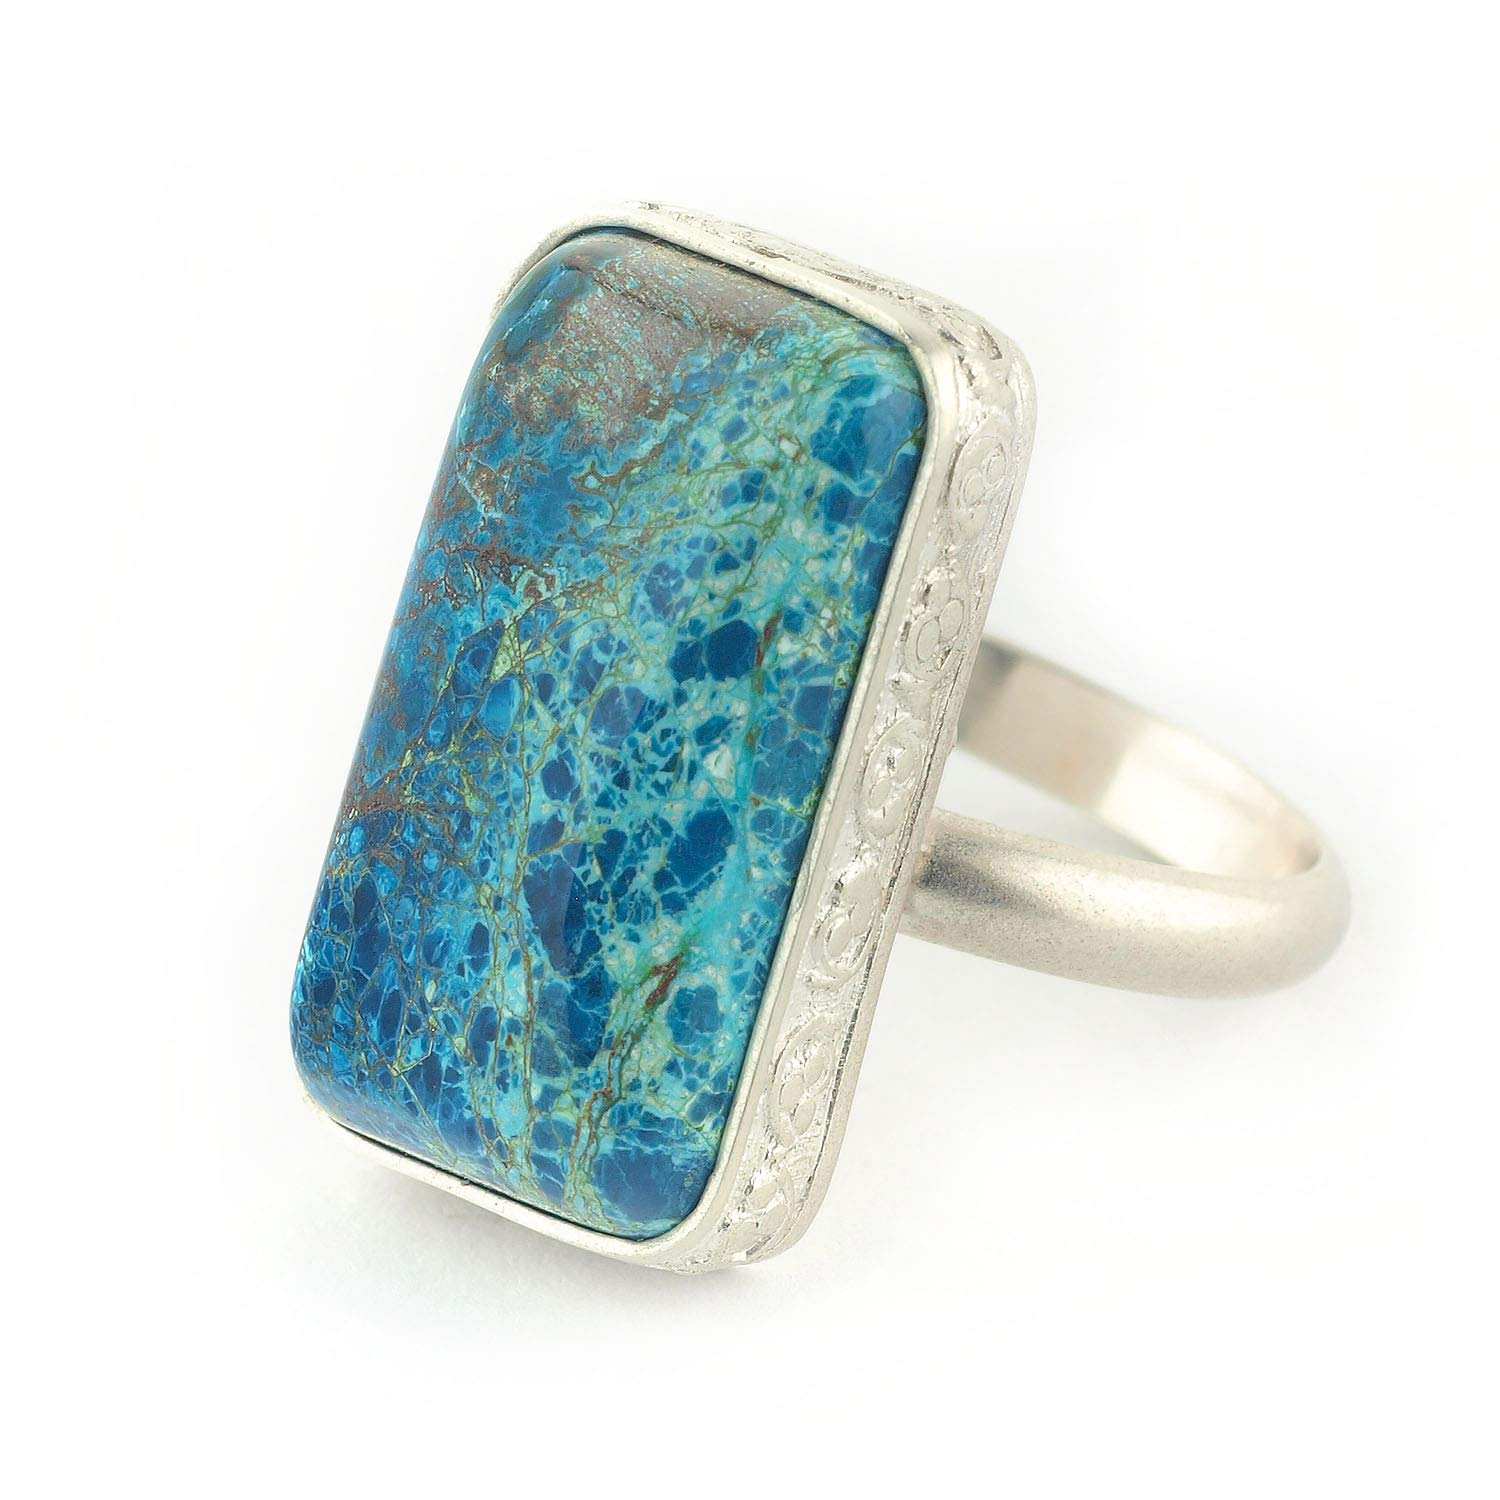 Quantum Quattro and Sterling Silver Ring a rectangular Max 41% OFF shape Popular overseas